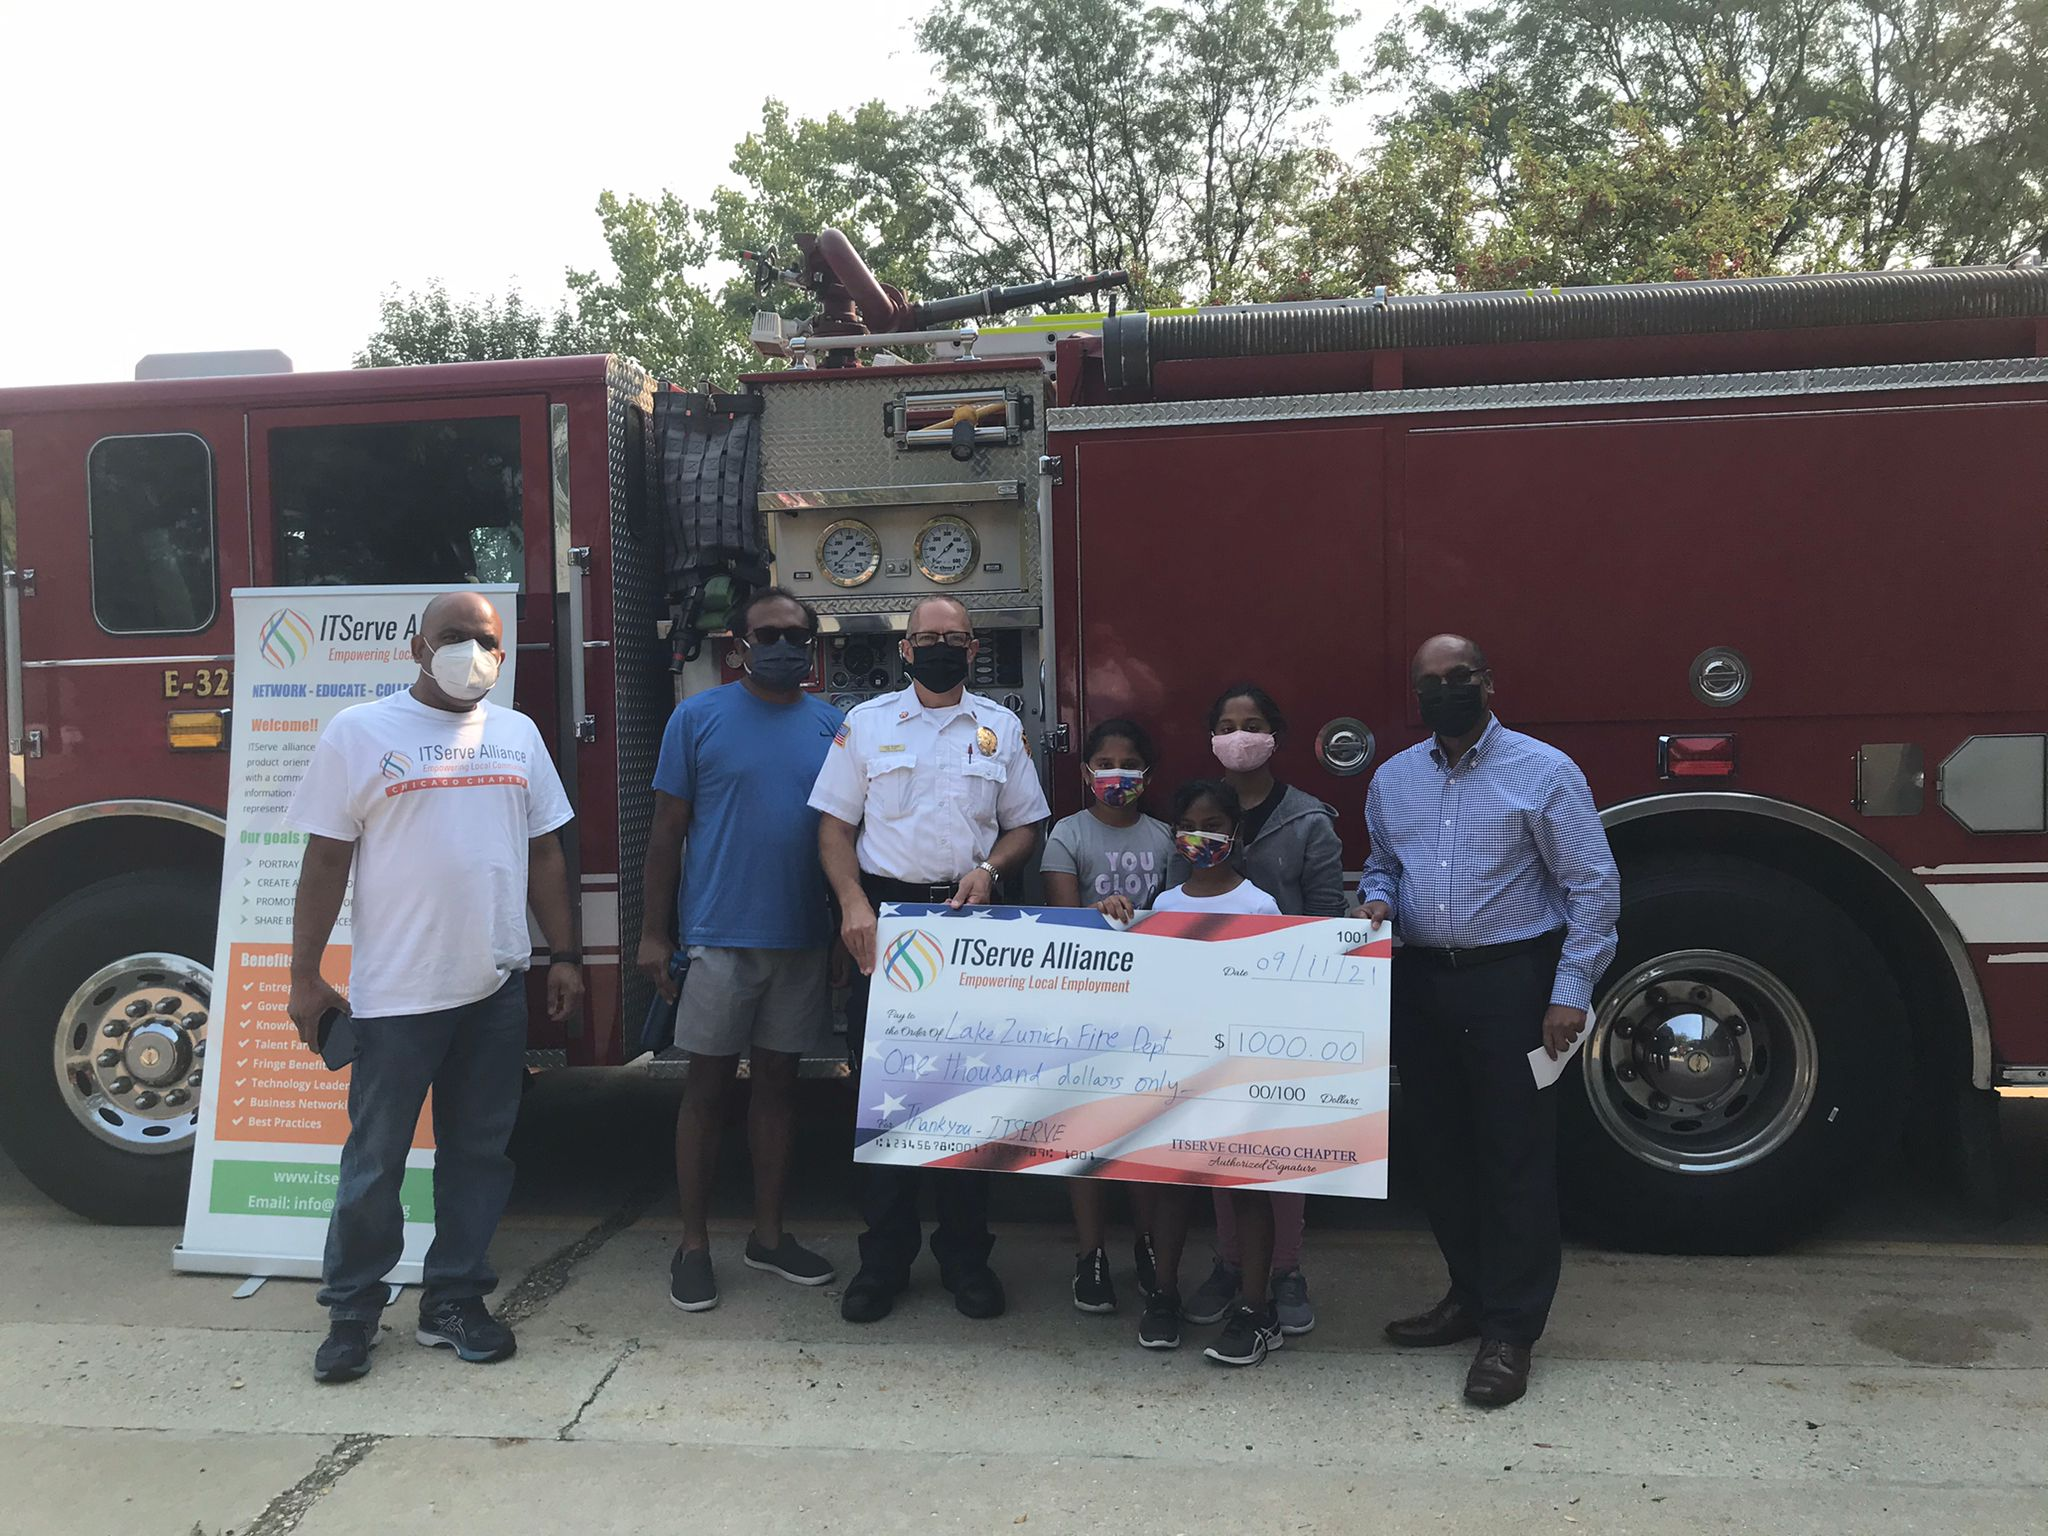 Team Chicago Donated $1000 to Lake Zurich Fire Department